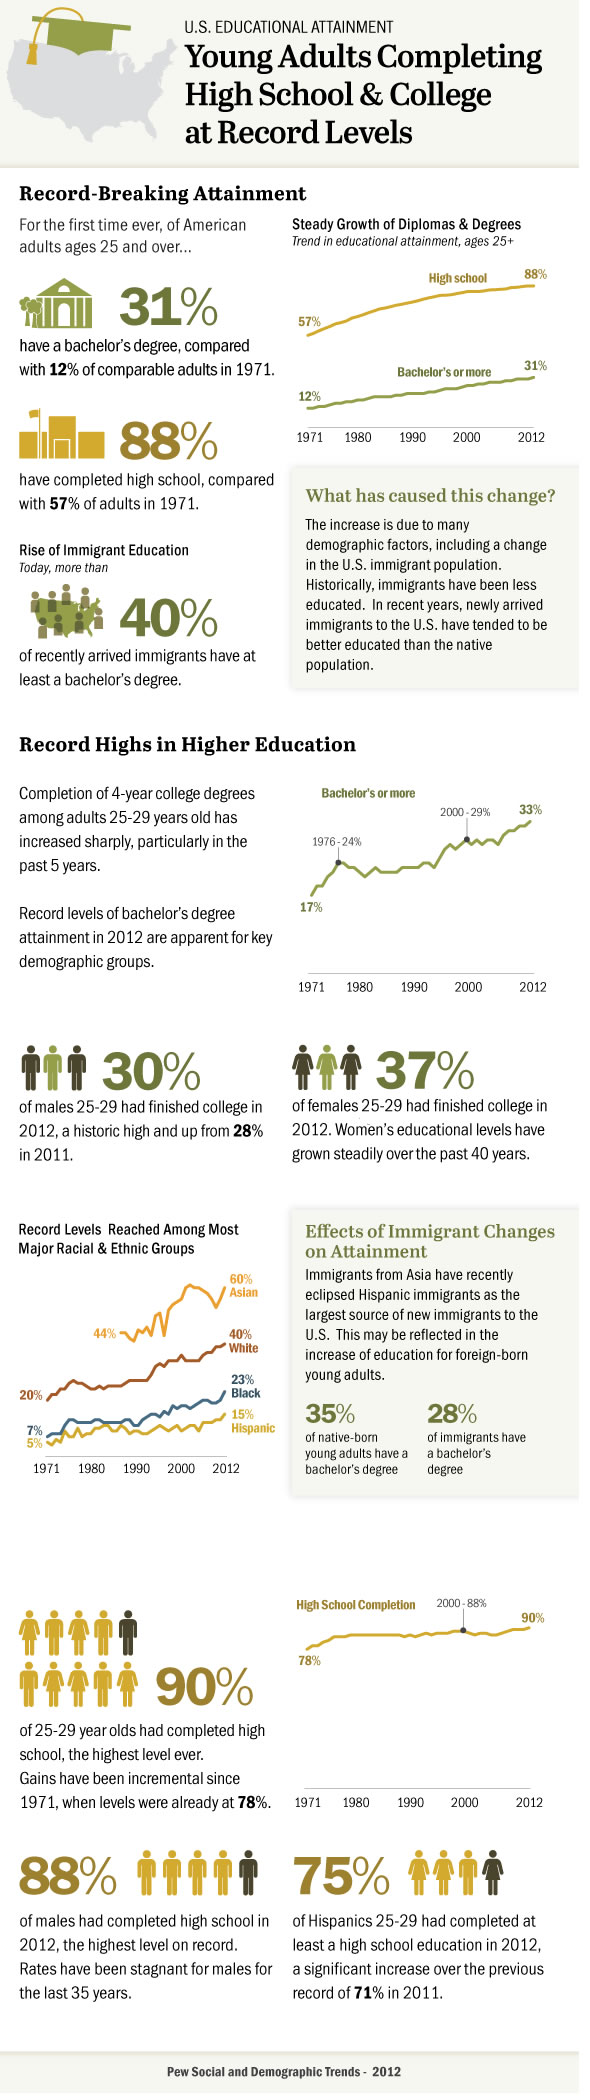 young adults completing high school college at record levels young adults completing high school college at record levels